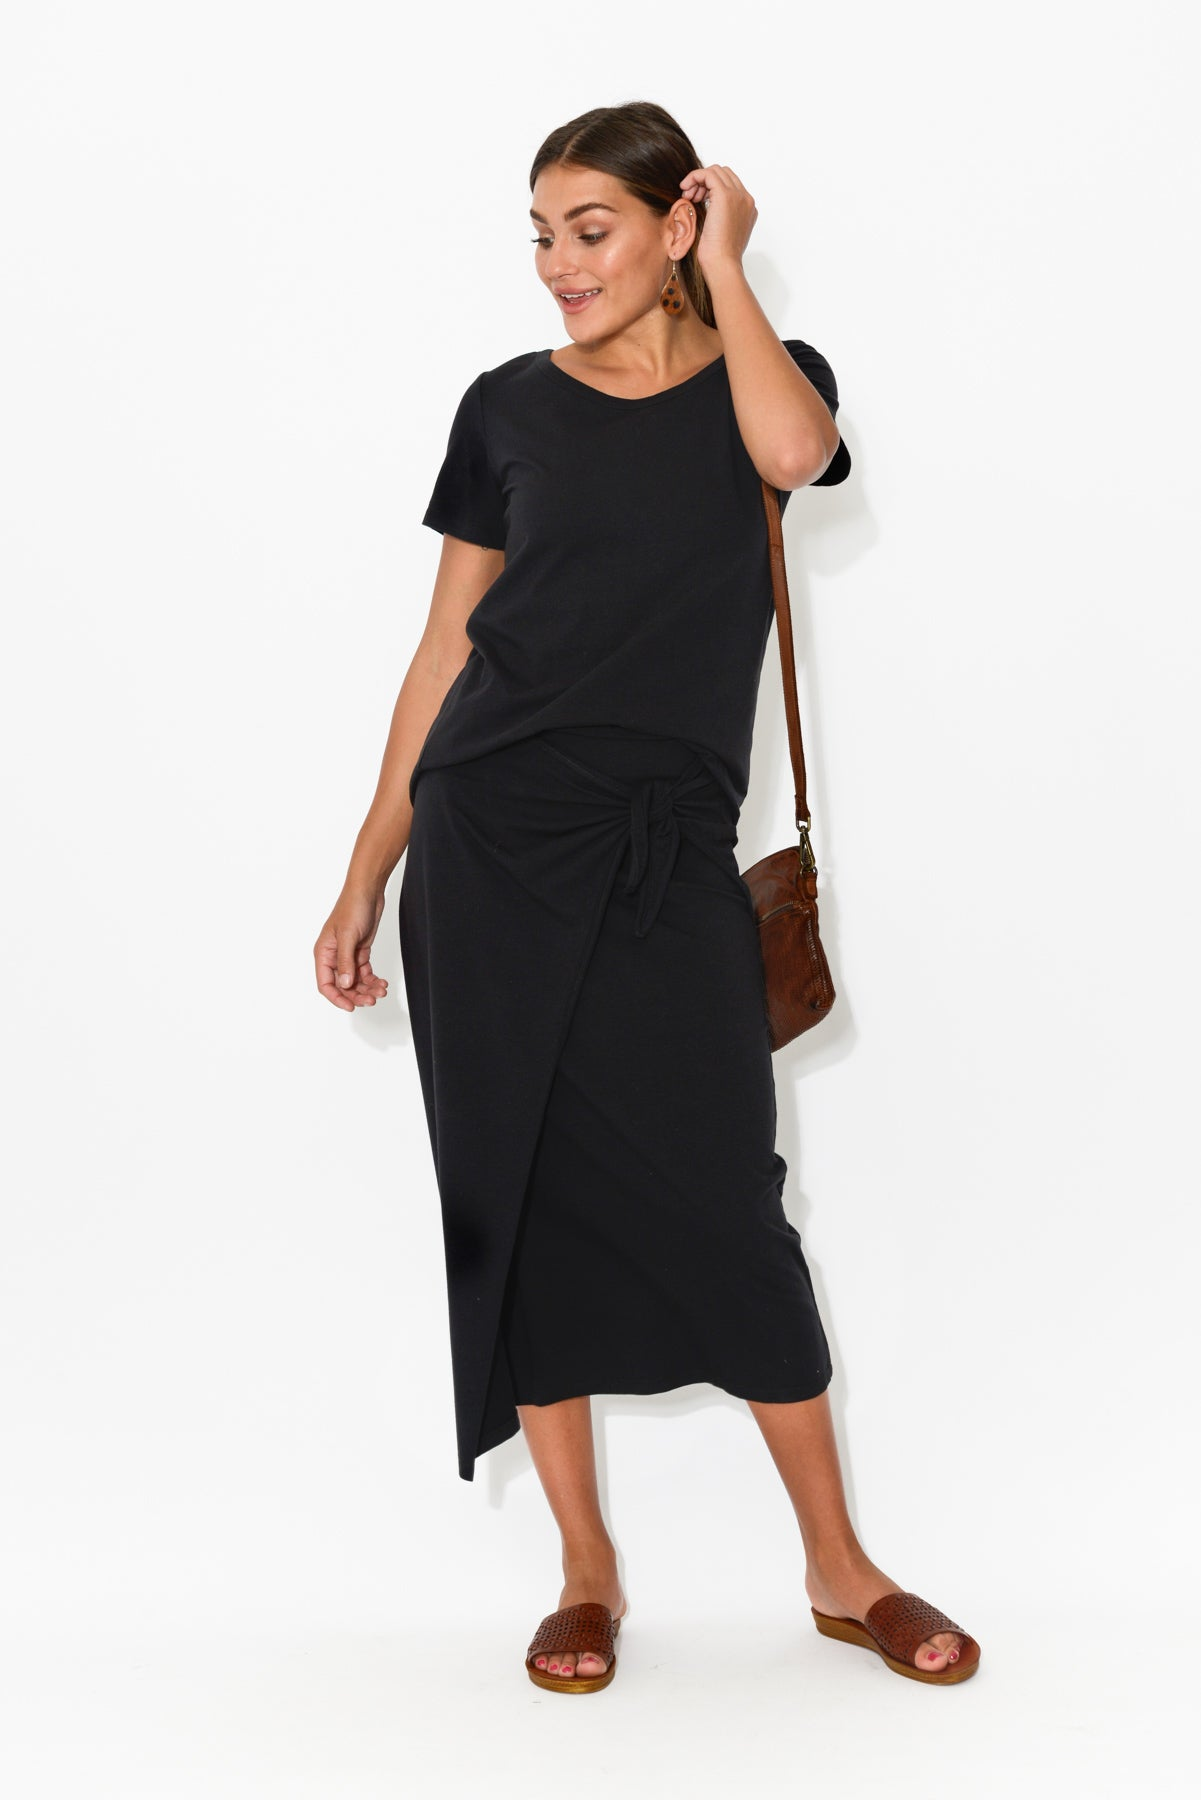 Lana Black Midi Skirt - Blue Bungalow